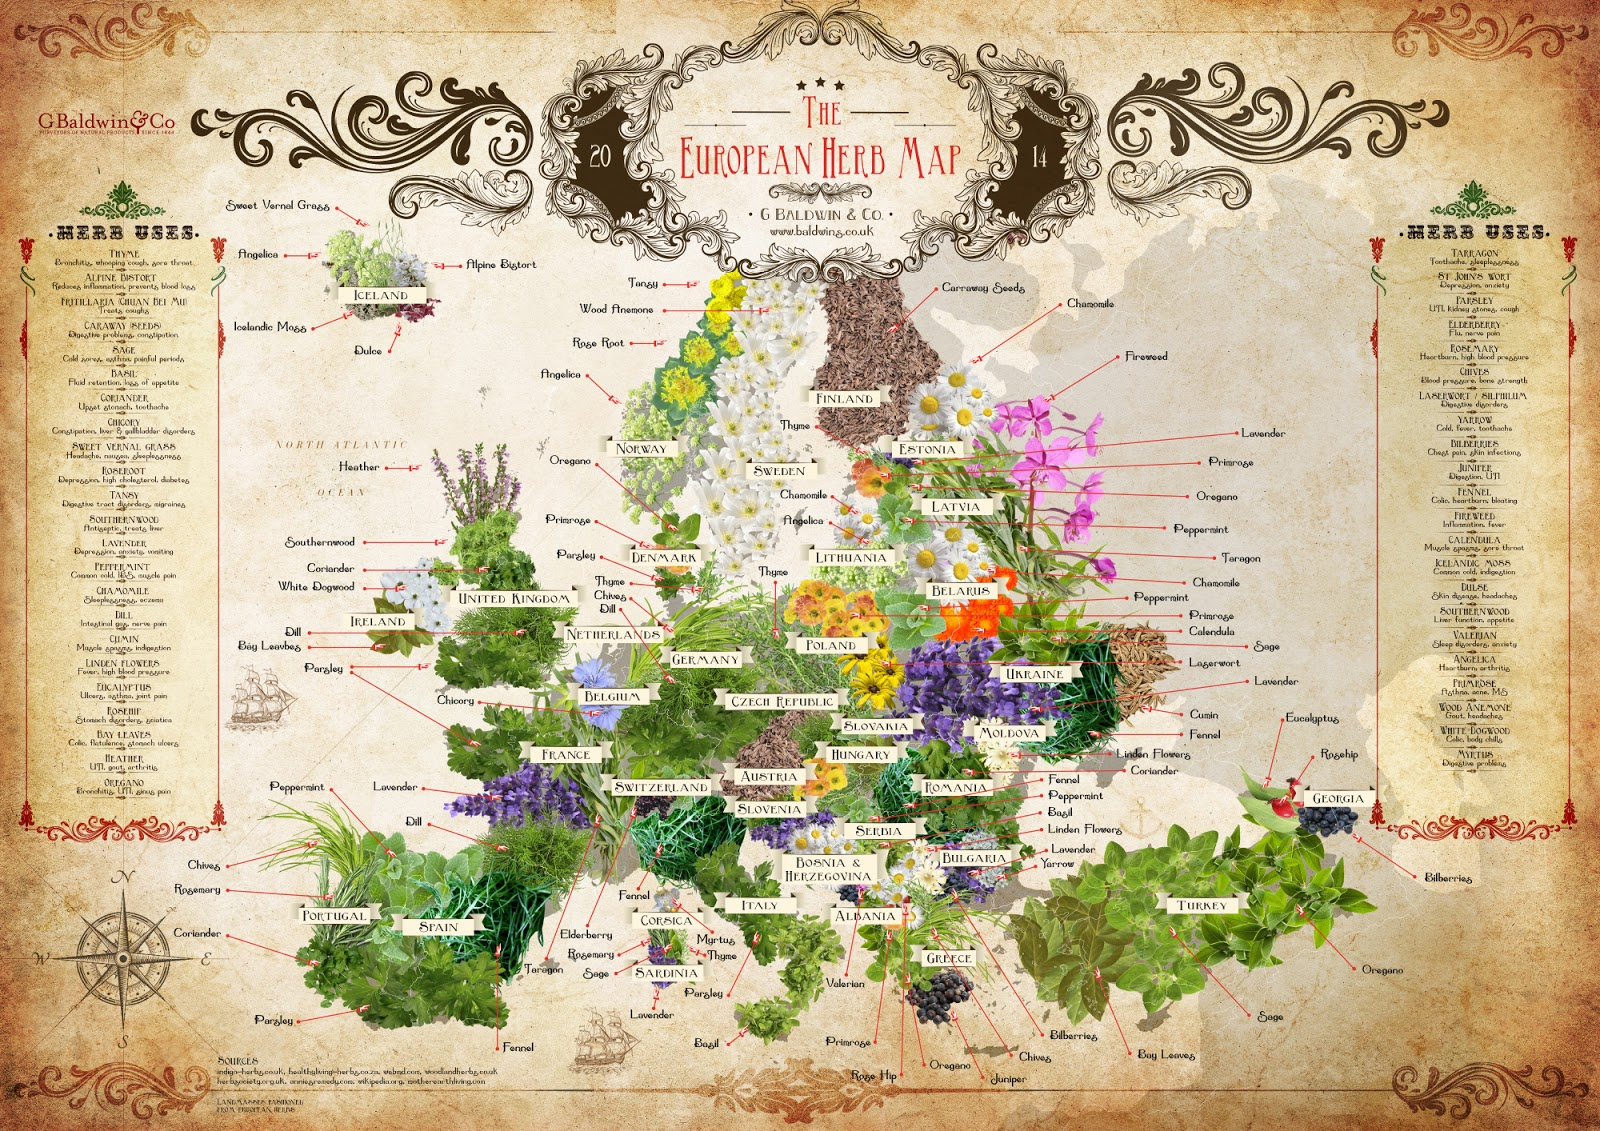 The European herb map